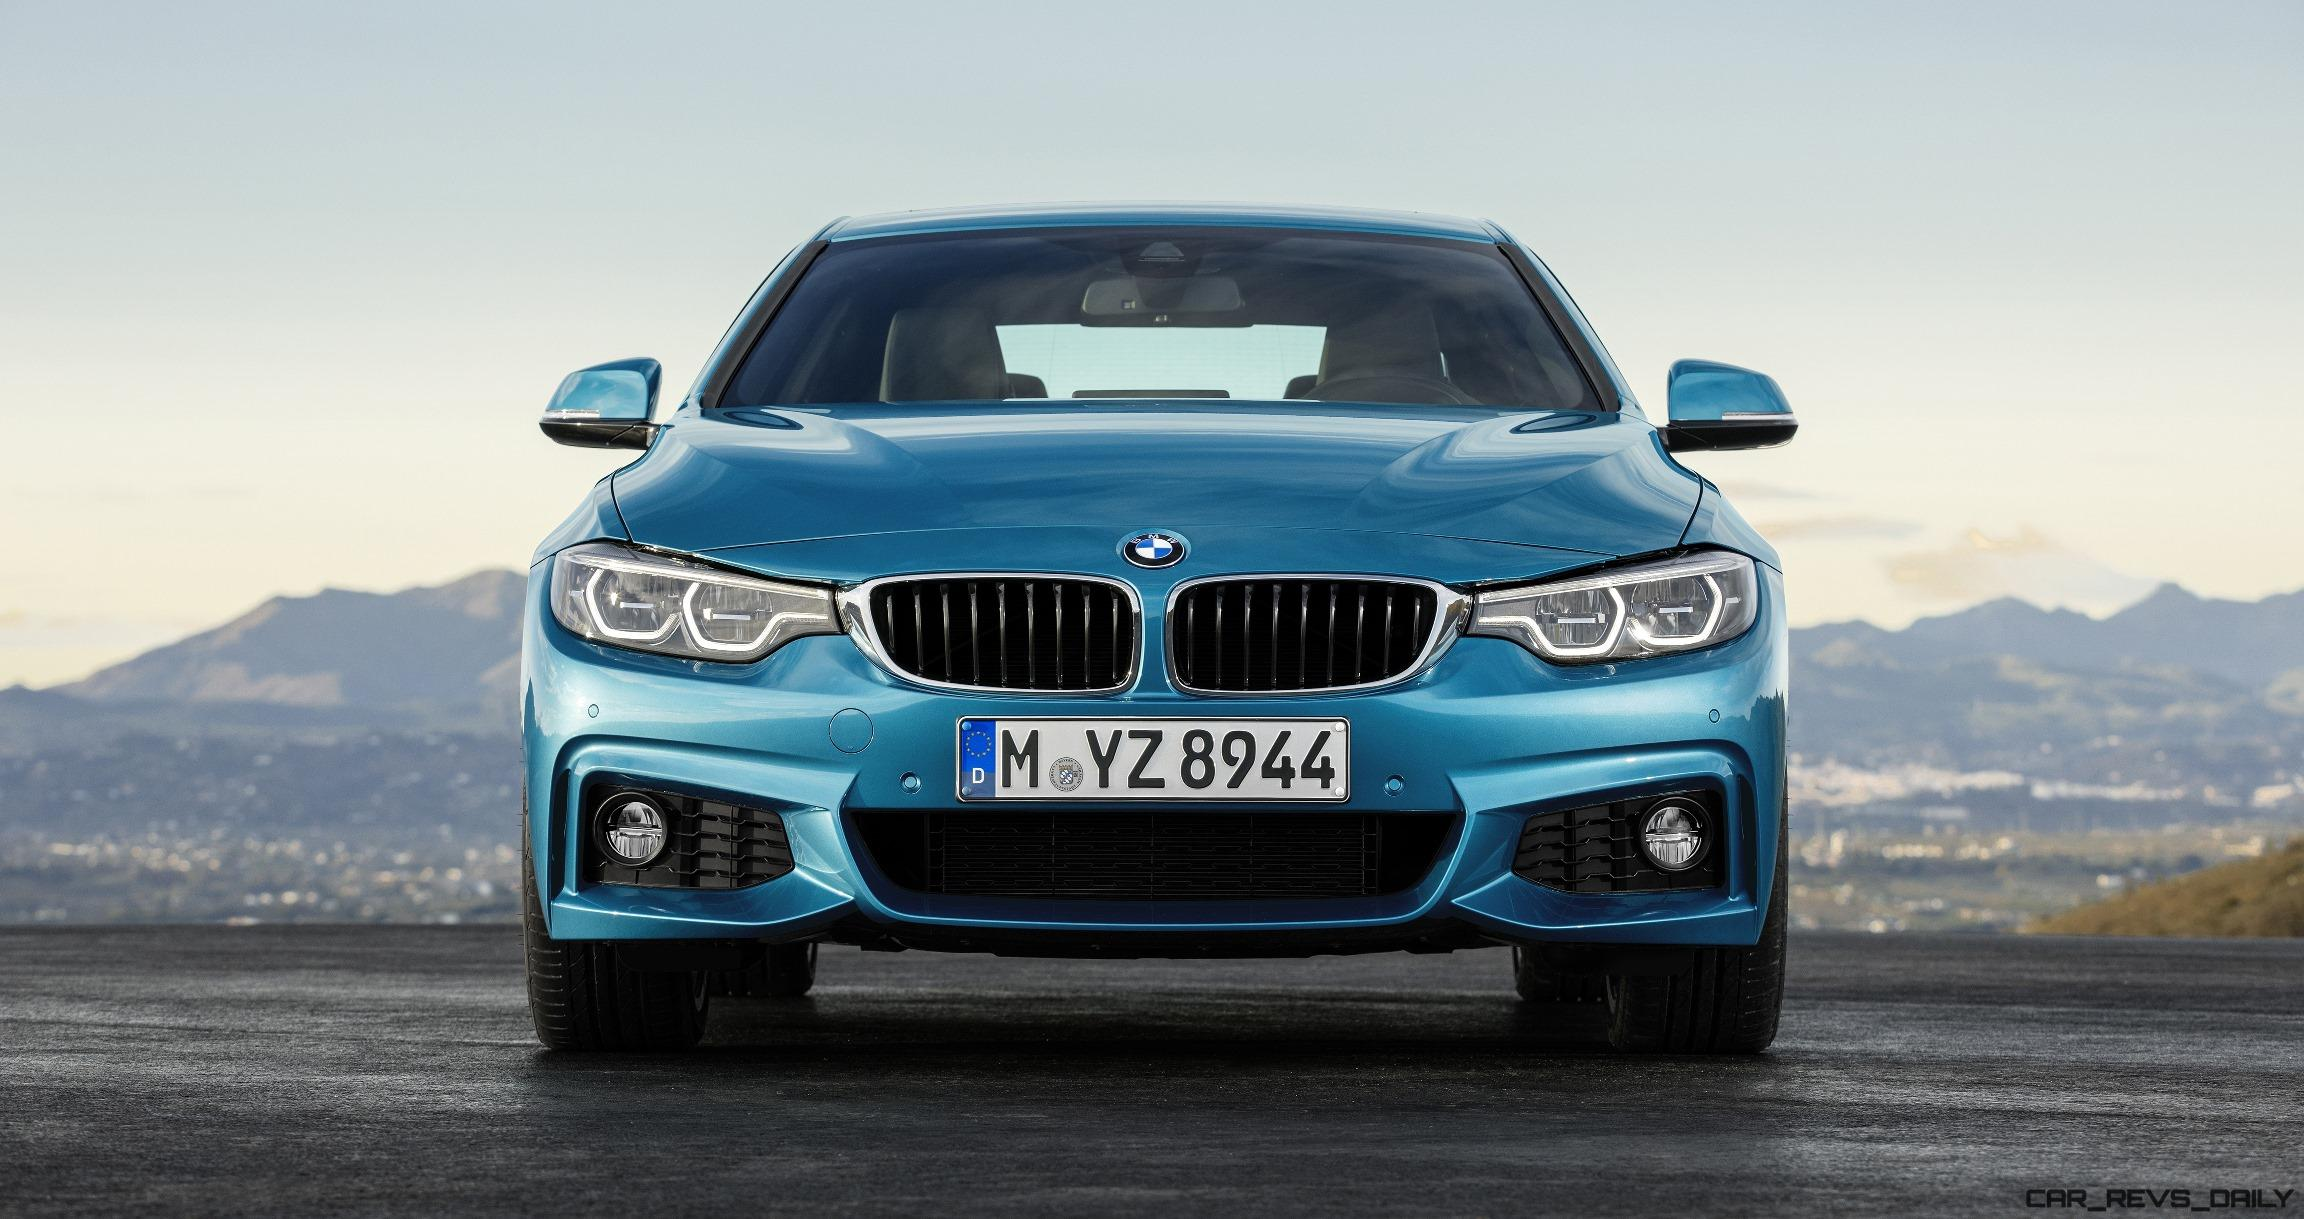 40s 2018 BMW M4 CARBON Leads 4 Series Refresh